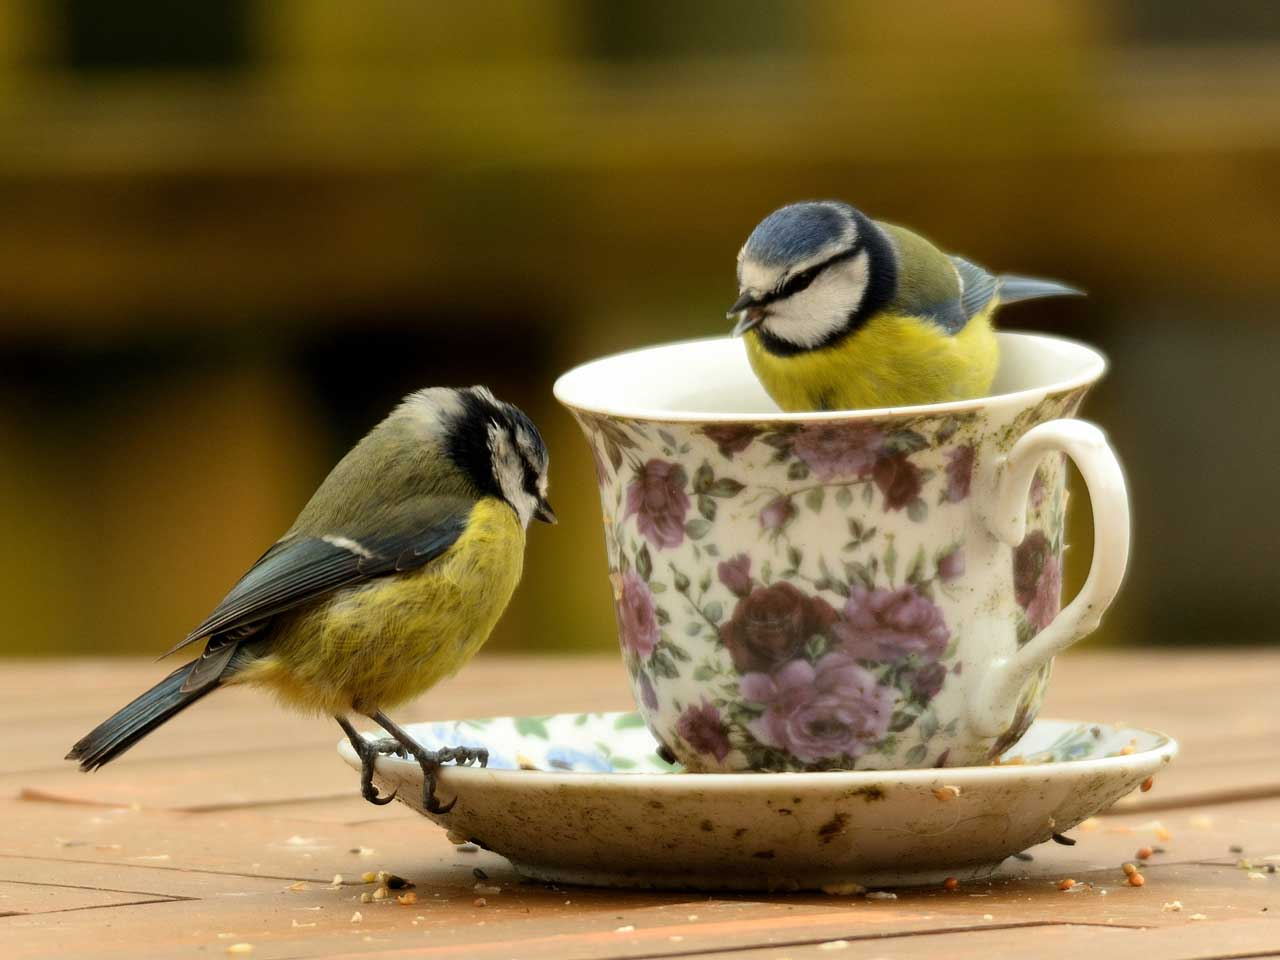 Encourage wild birds to feed in the garden